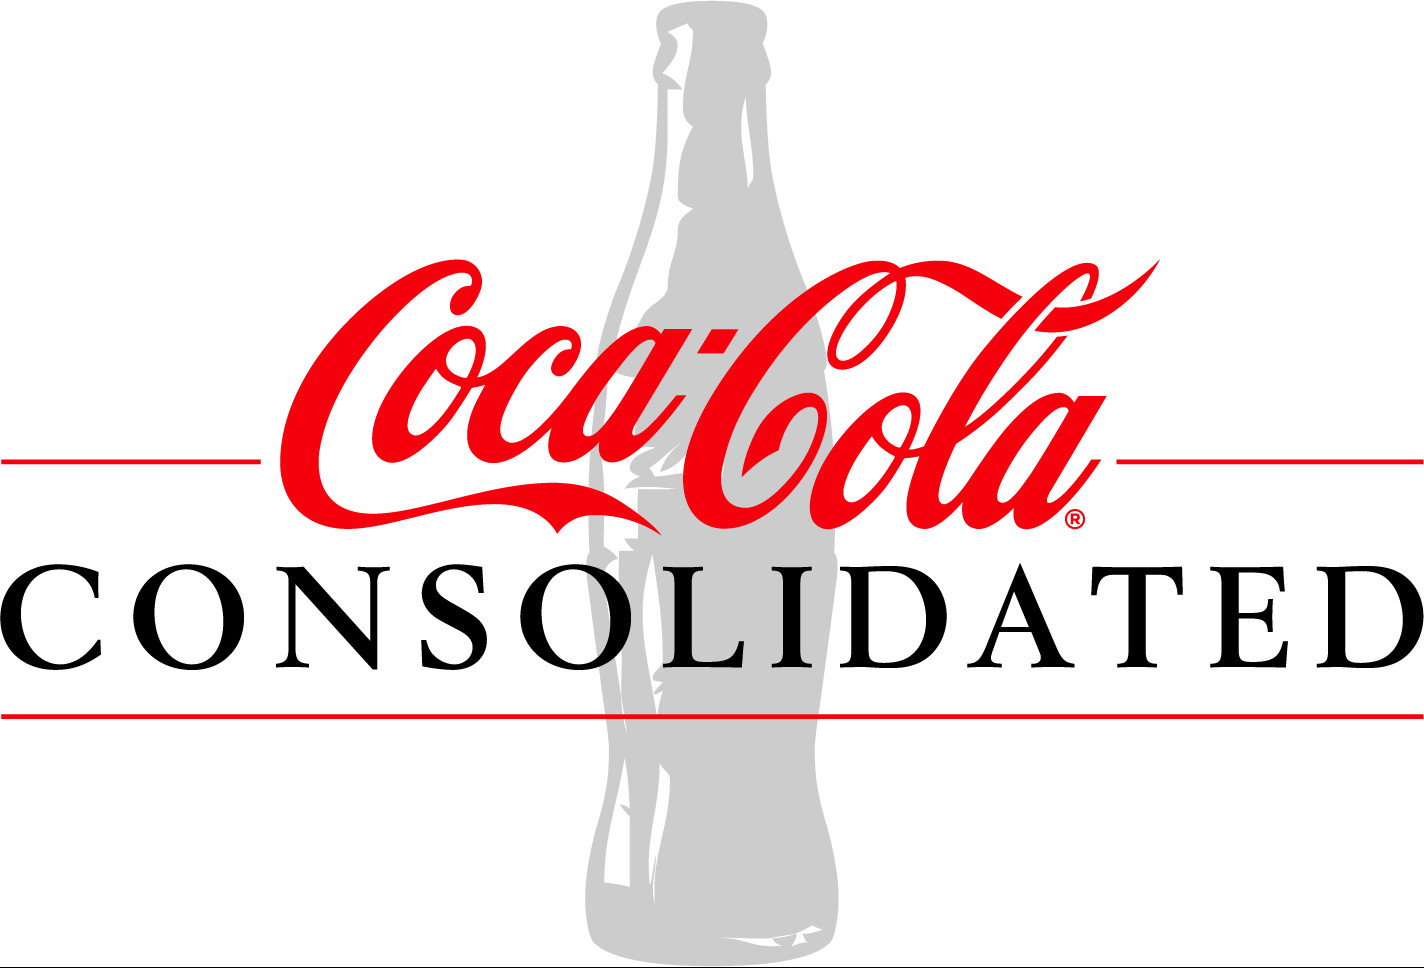 Coca Cola Bottling Company Consolidated